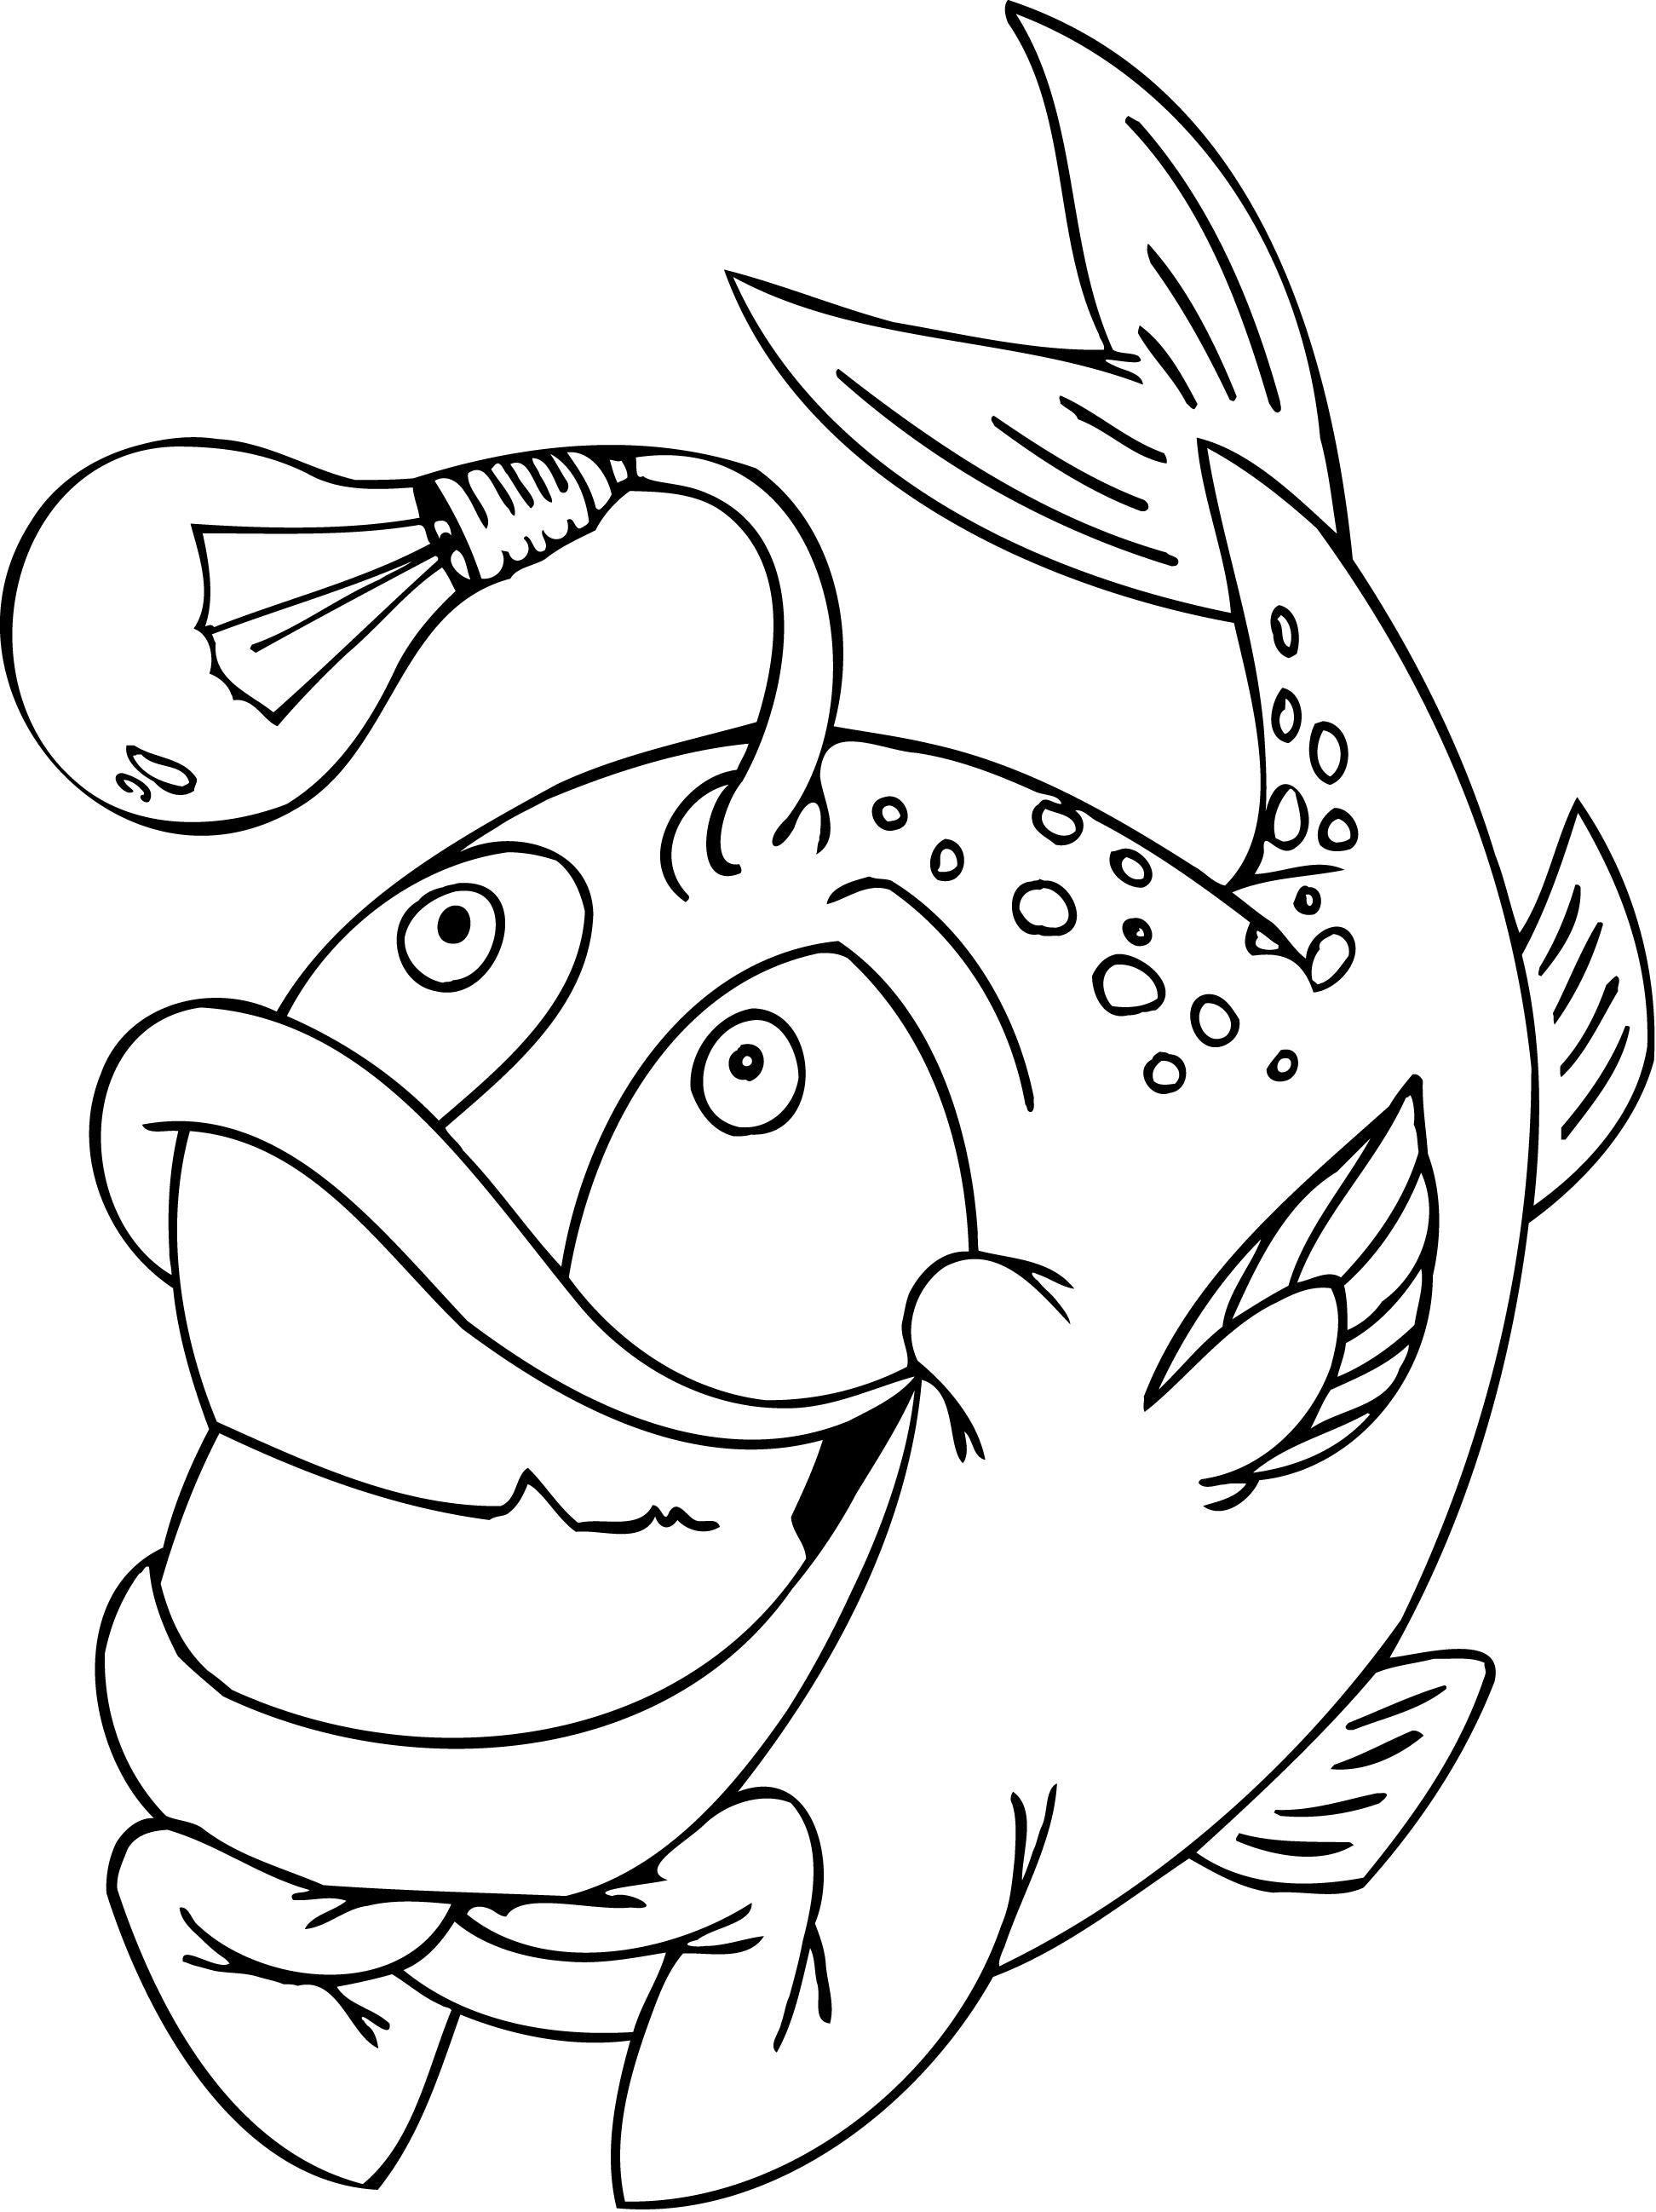 Uncategorized Silly Coloring Pages free printable funny coloring pages for kids kids